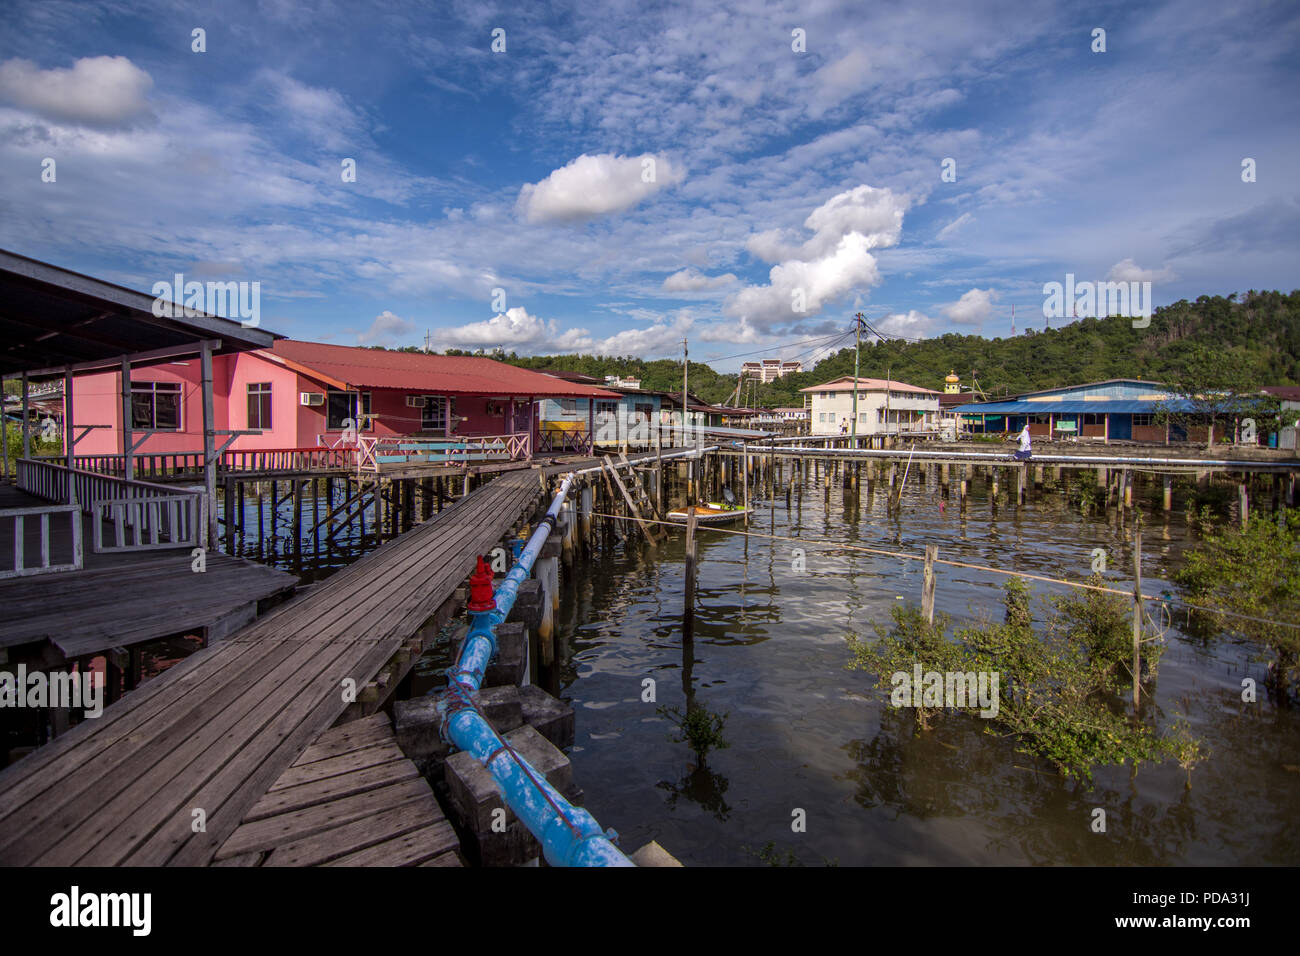 Raised floating Houses and walk ways of the historical settlement  Kampong Ayer, meaning Water village, in Bandar Seri Begawan, the capital city of Br - Stock Image